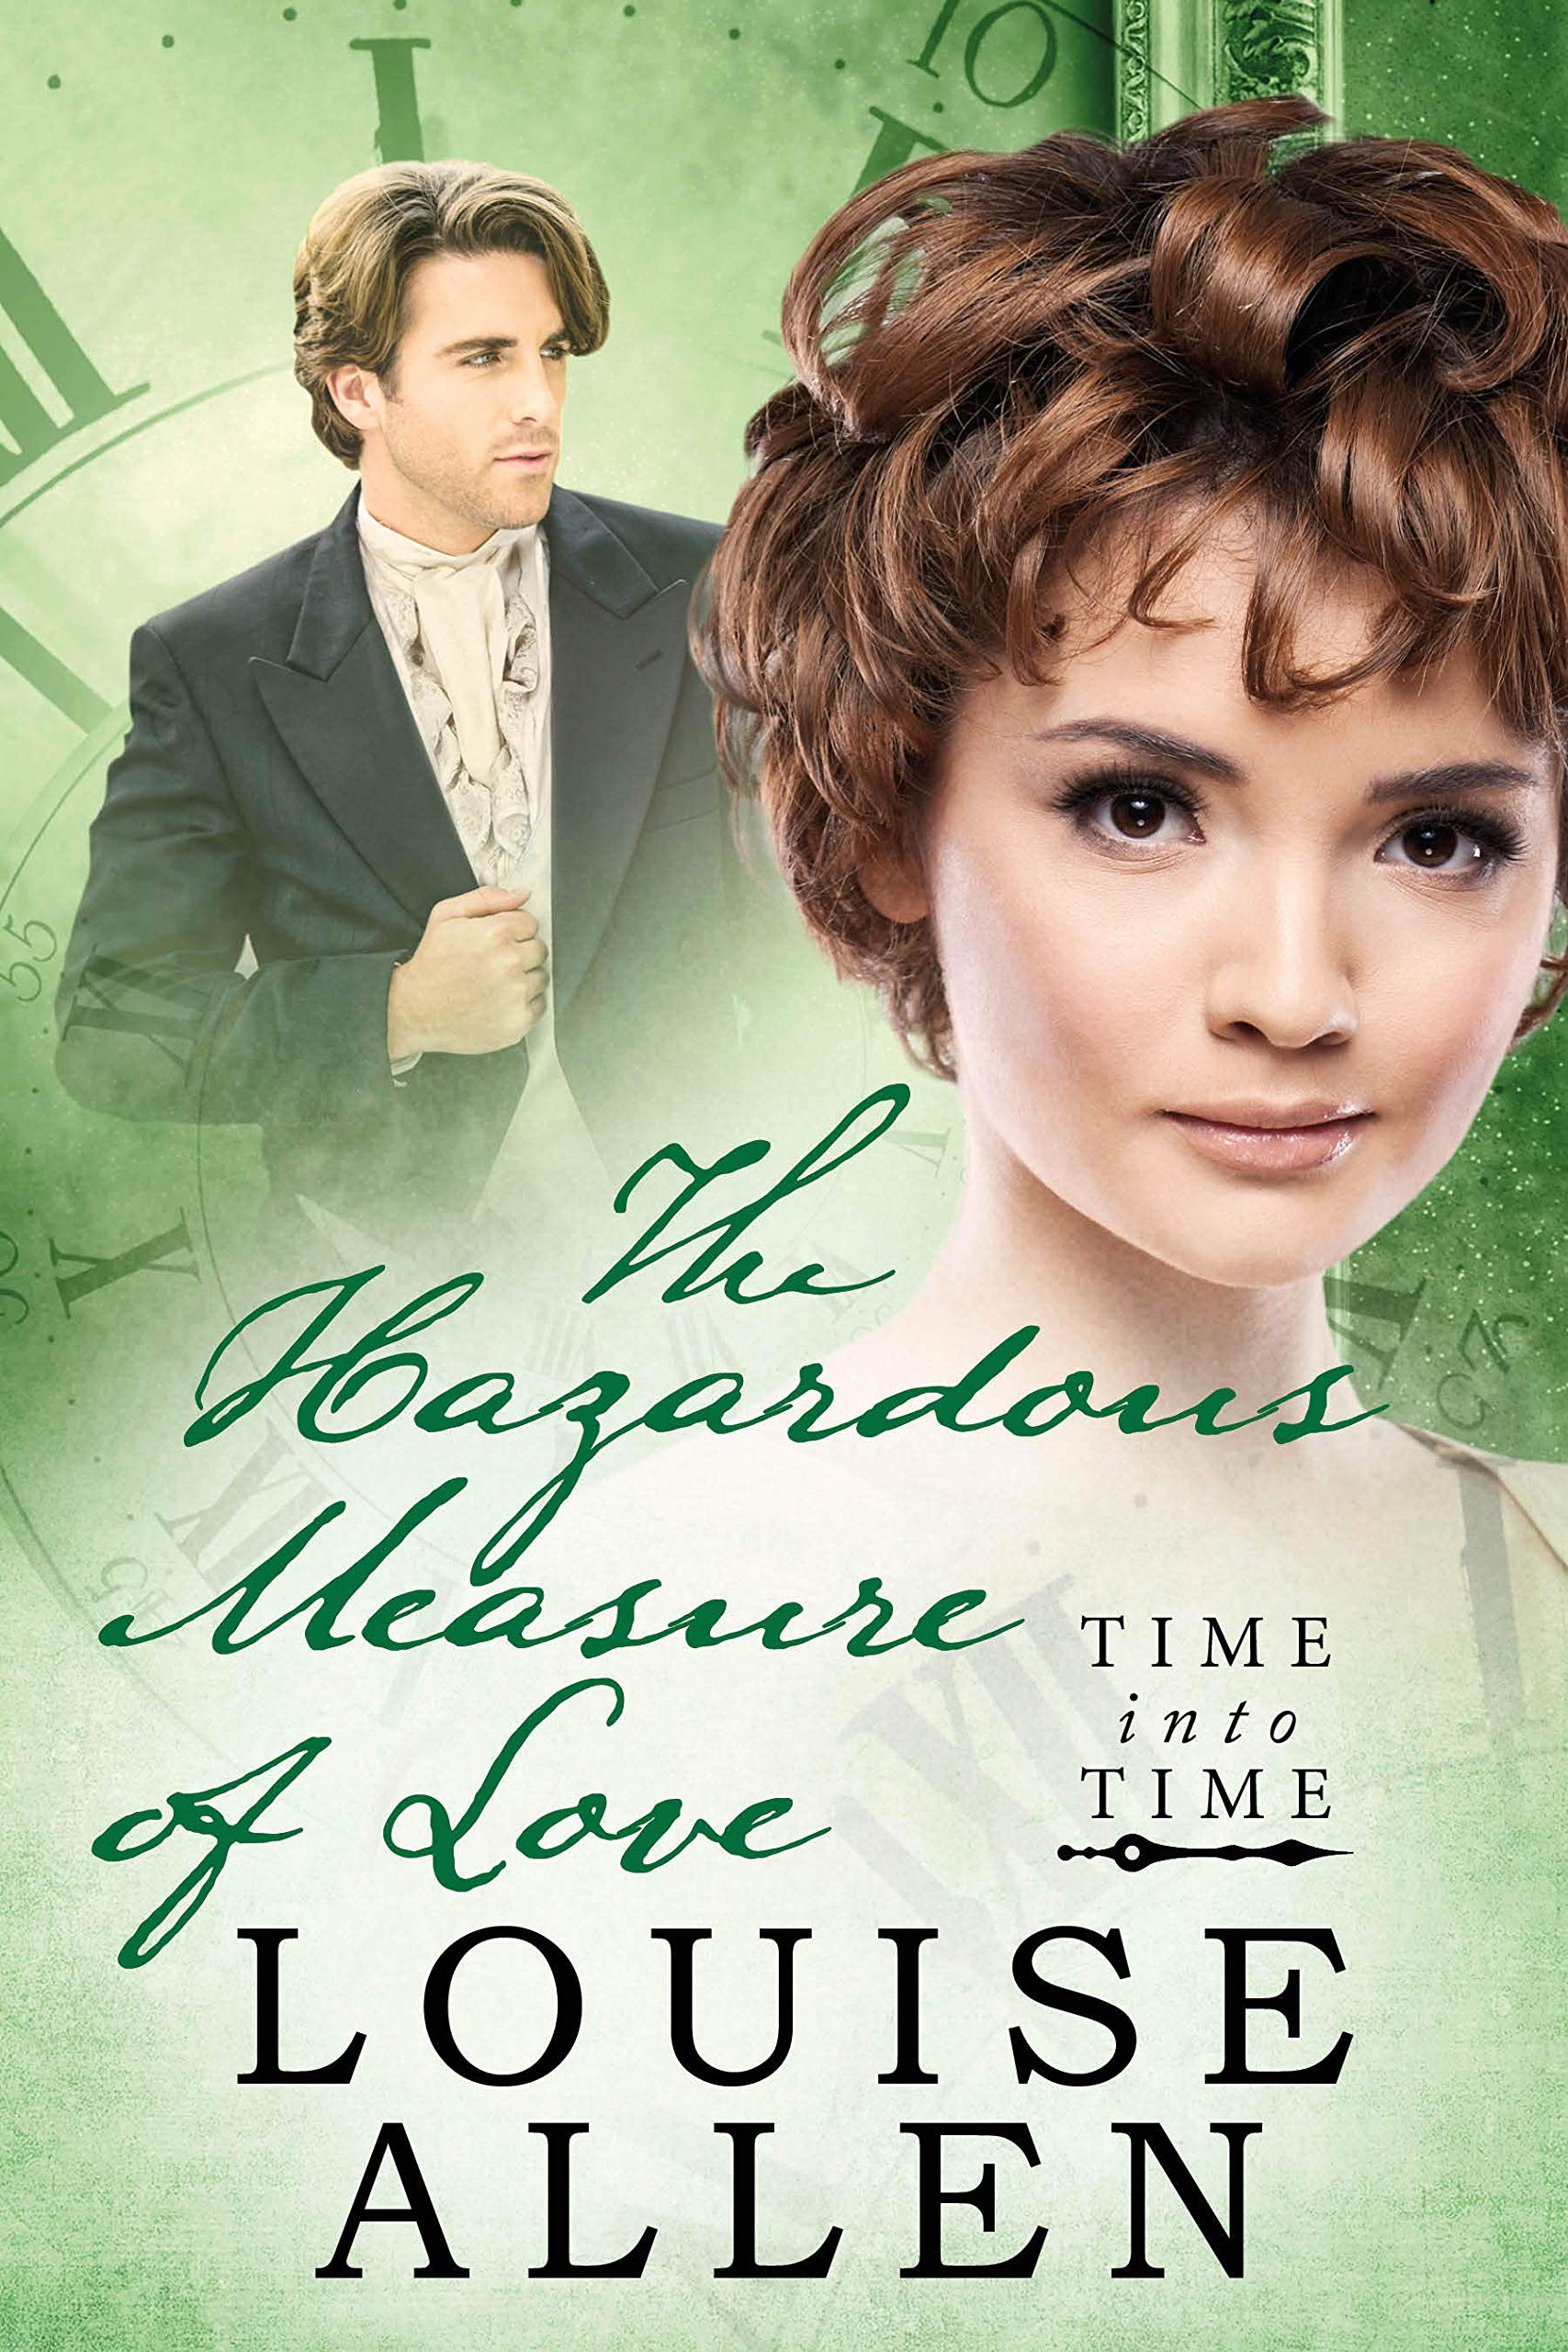 The Hazardous Measure of Love (Time Into Time #5)